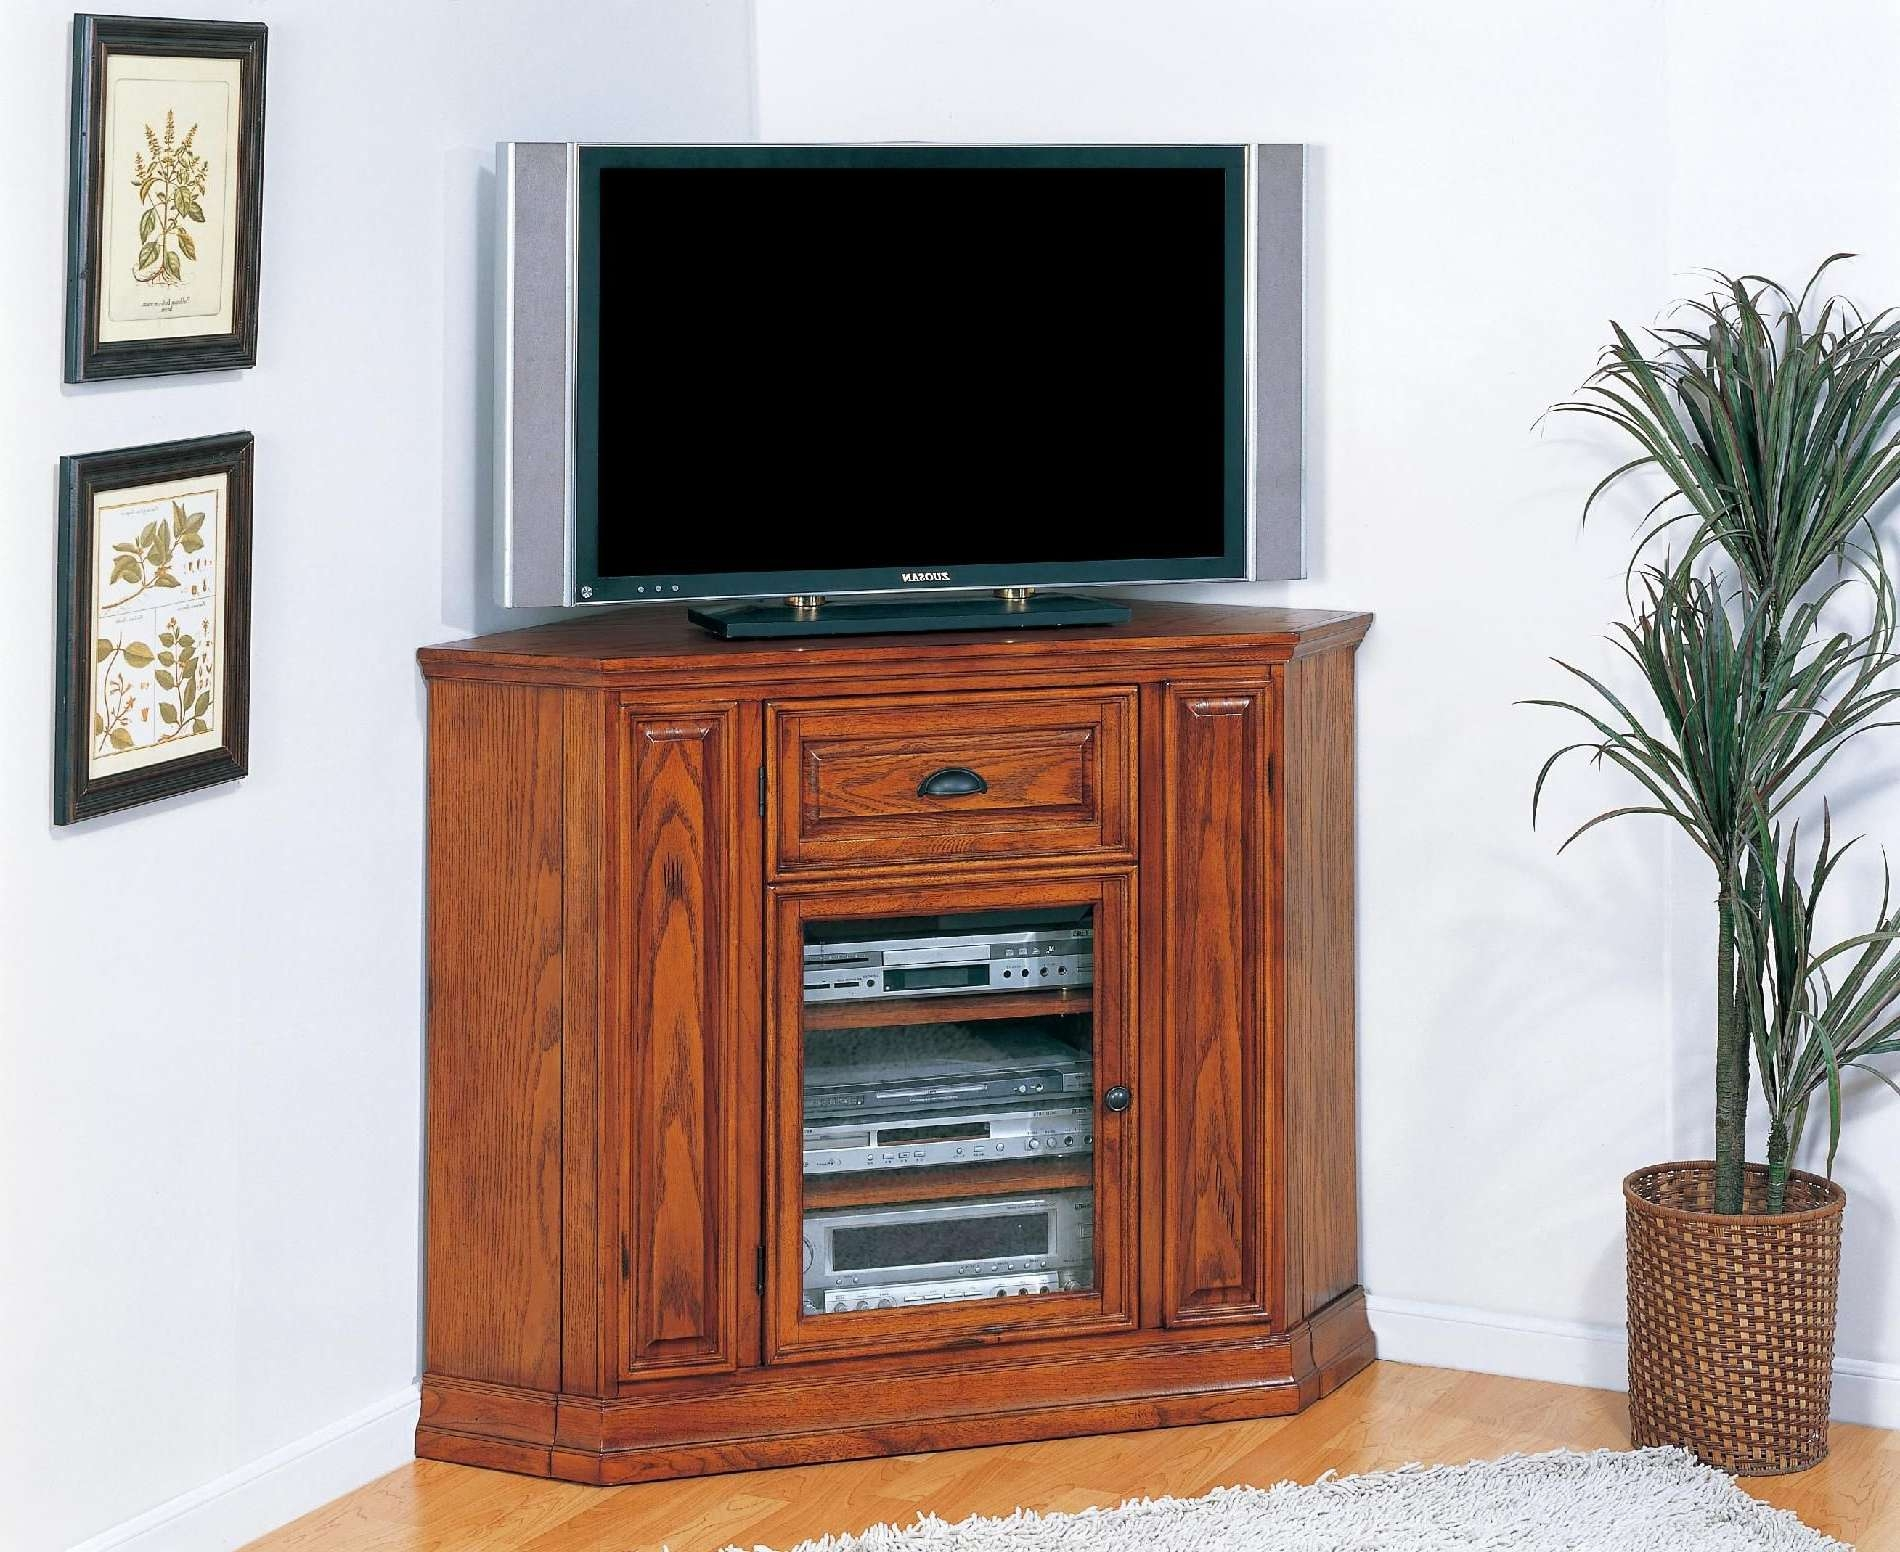 Tall Corner Tv Cabinets For Flat Screens • Corner Cabinets Throughout Corner Tv Cabinets For Flat Screens With Doors (View 17 of 20)